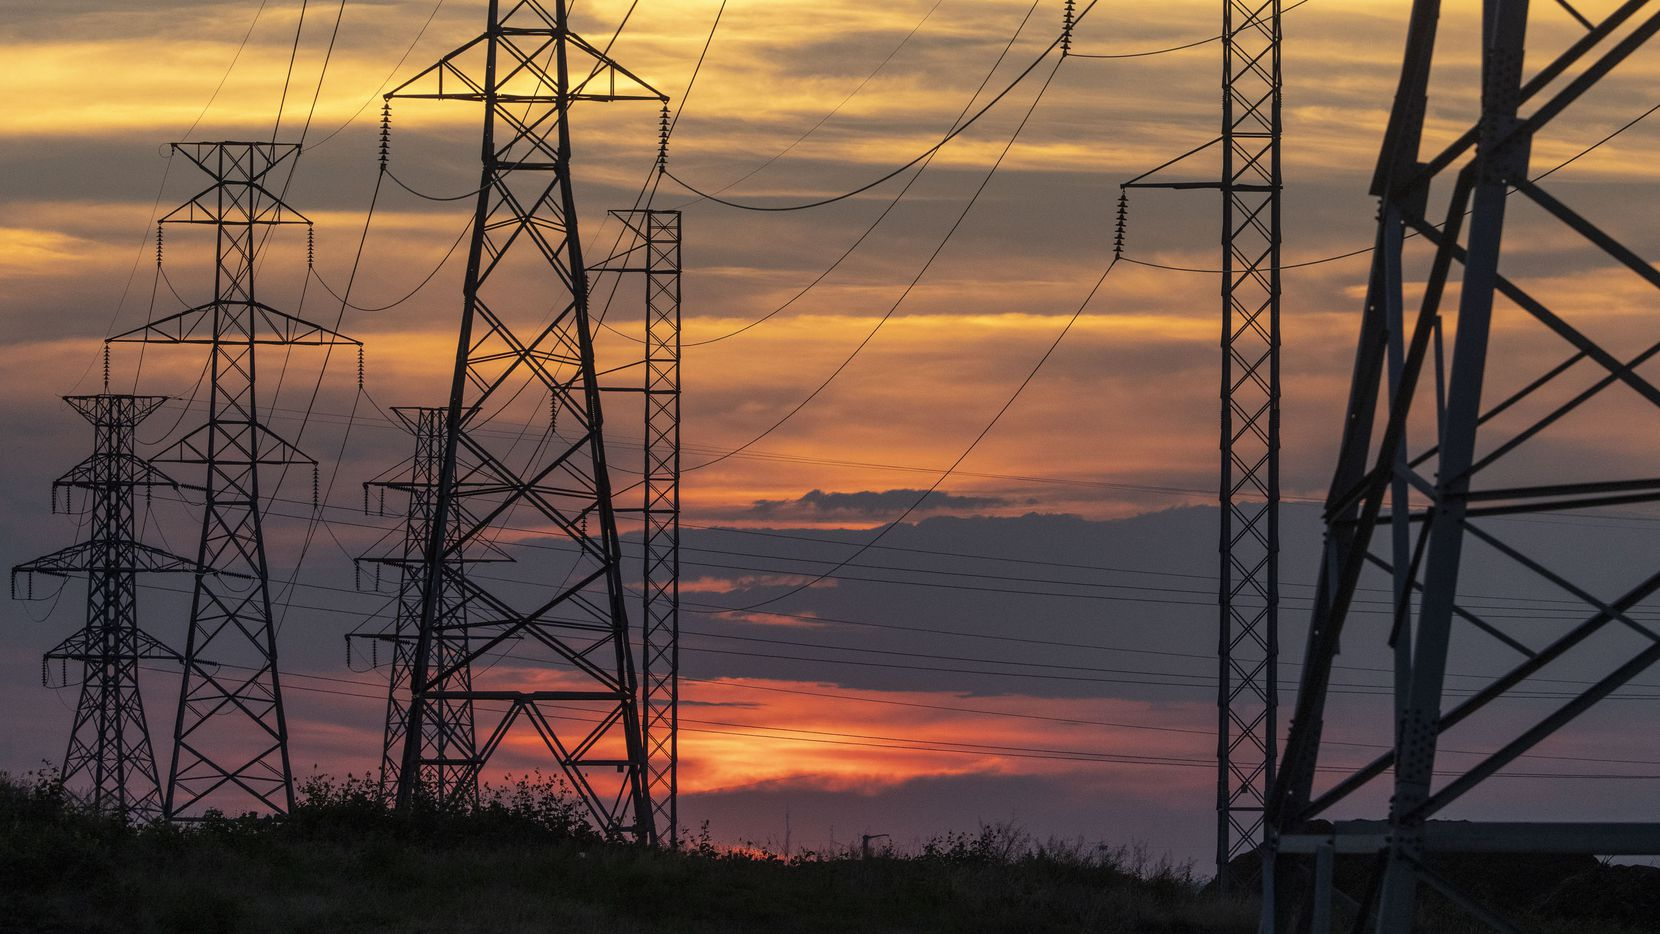 The sun sets behind electricity towers along Mountain Creek Parkway in Dallas on Wednesday, June 30, 2021. According to atmospheric scientists, record levels of ozone in the Dallas area earlier this month may be proof of a cyclical link between rising temperatures, smog and demand.